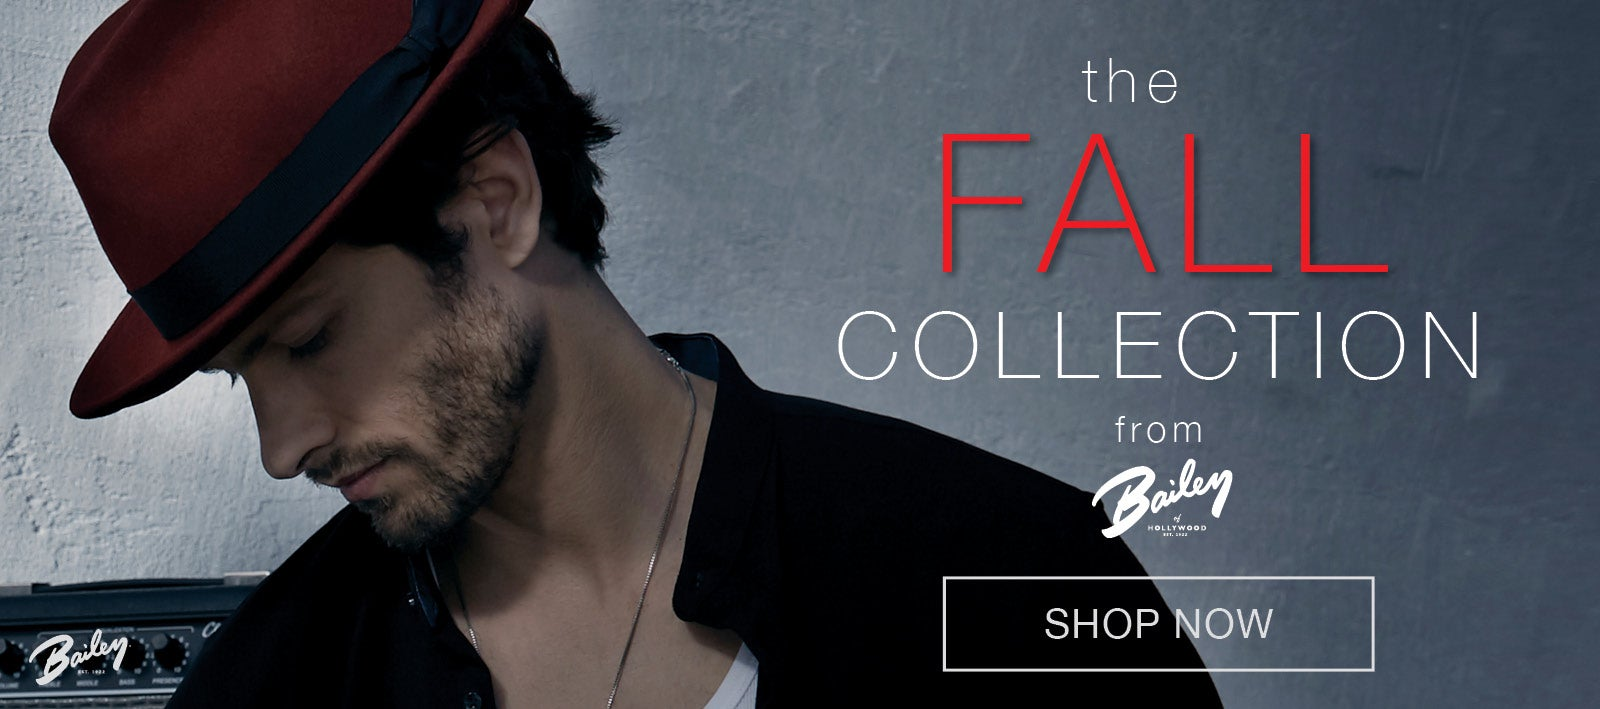 Bailey of Hollywood Fall Collection